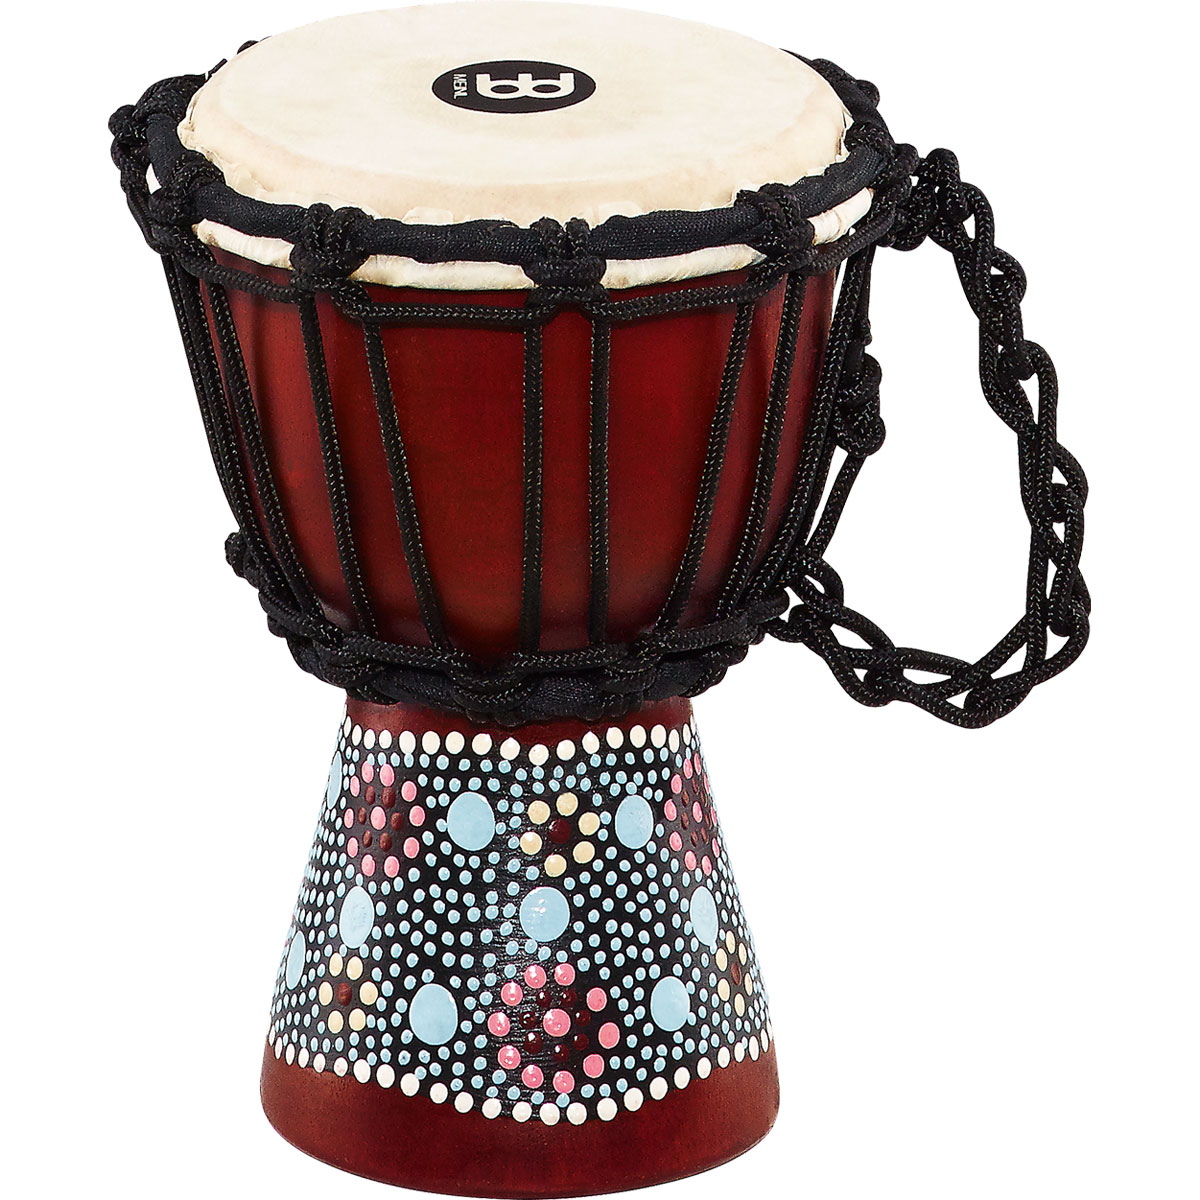 "Meinl 4.5"" Flower Mini Djembe"